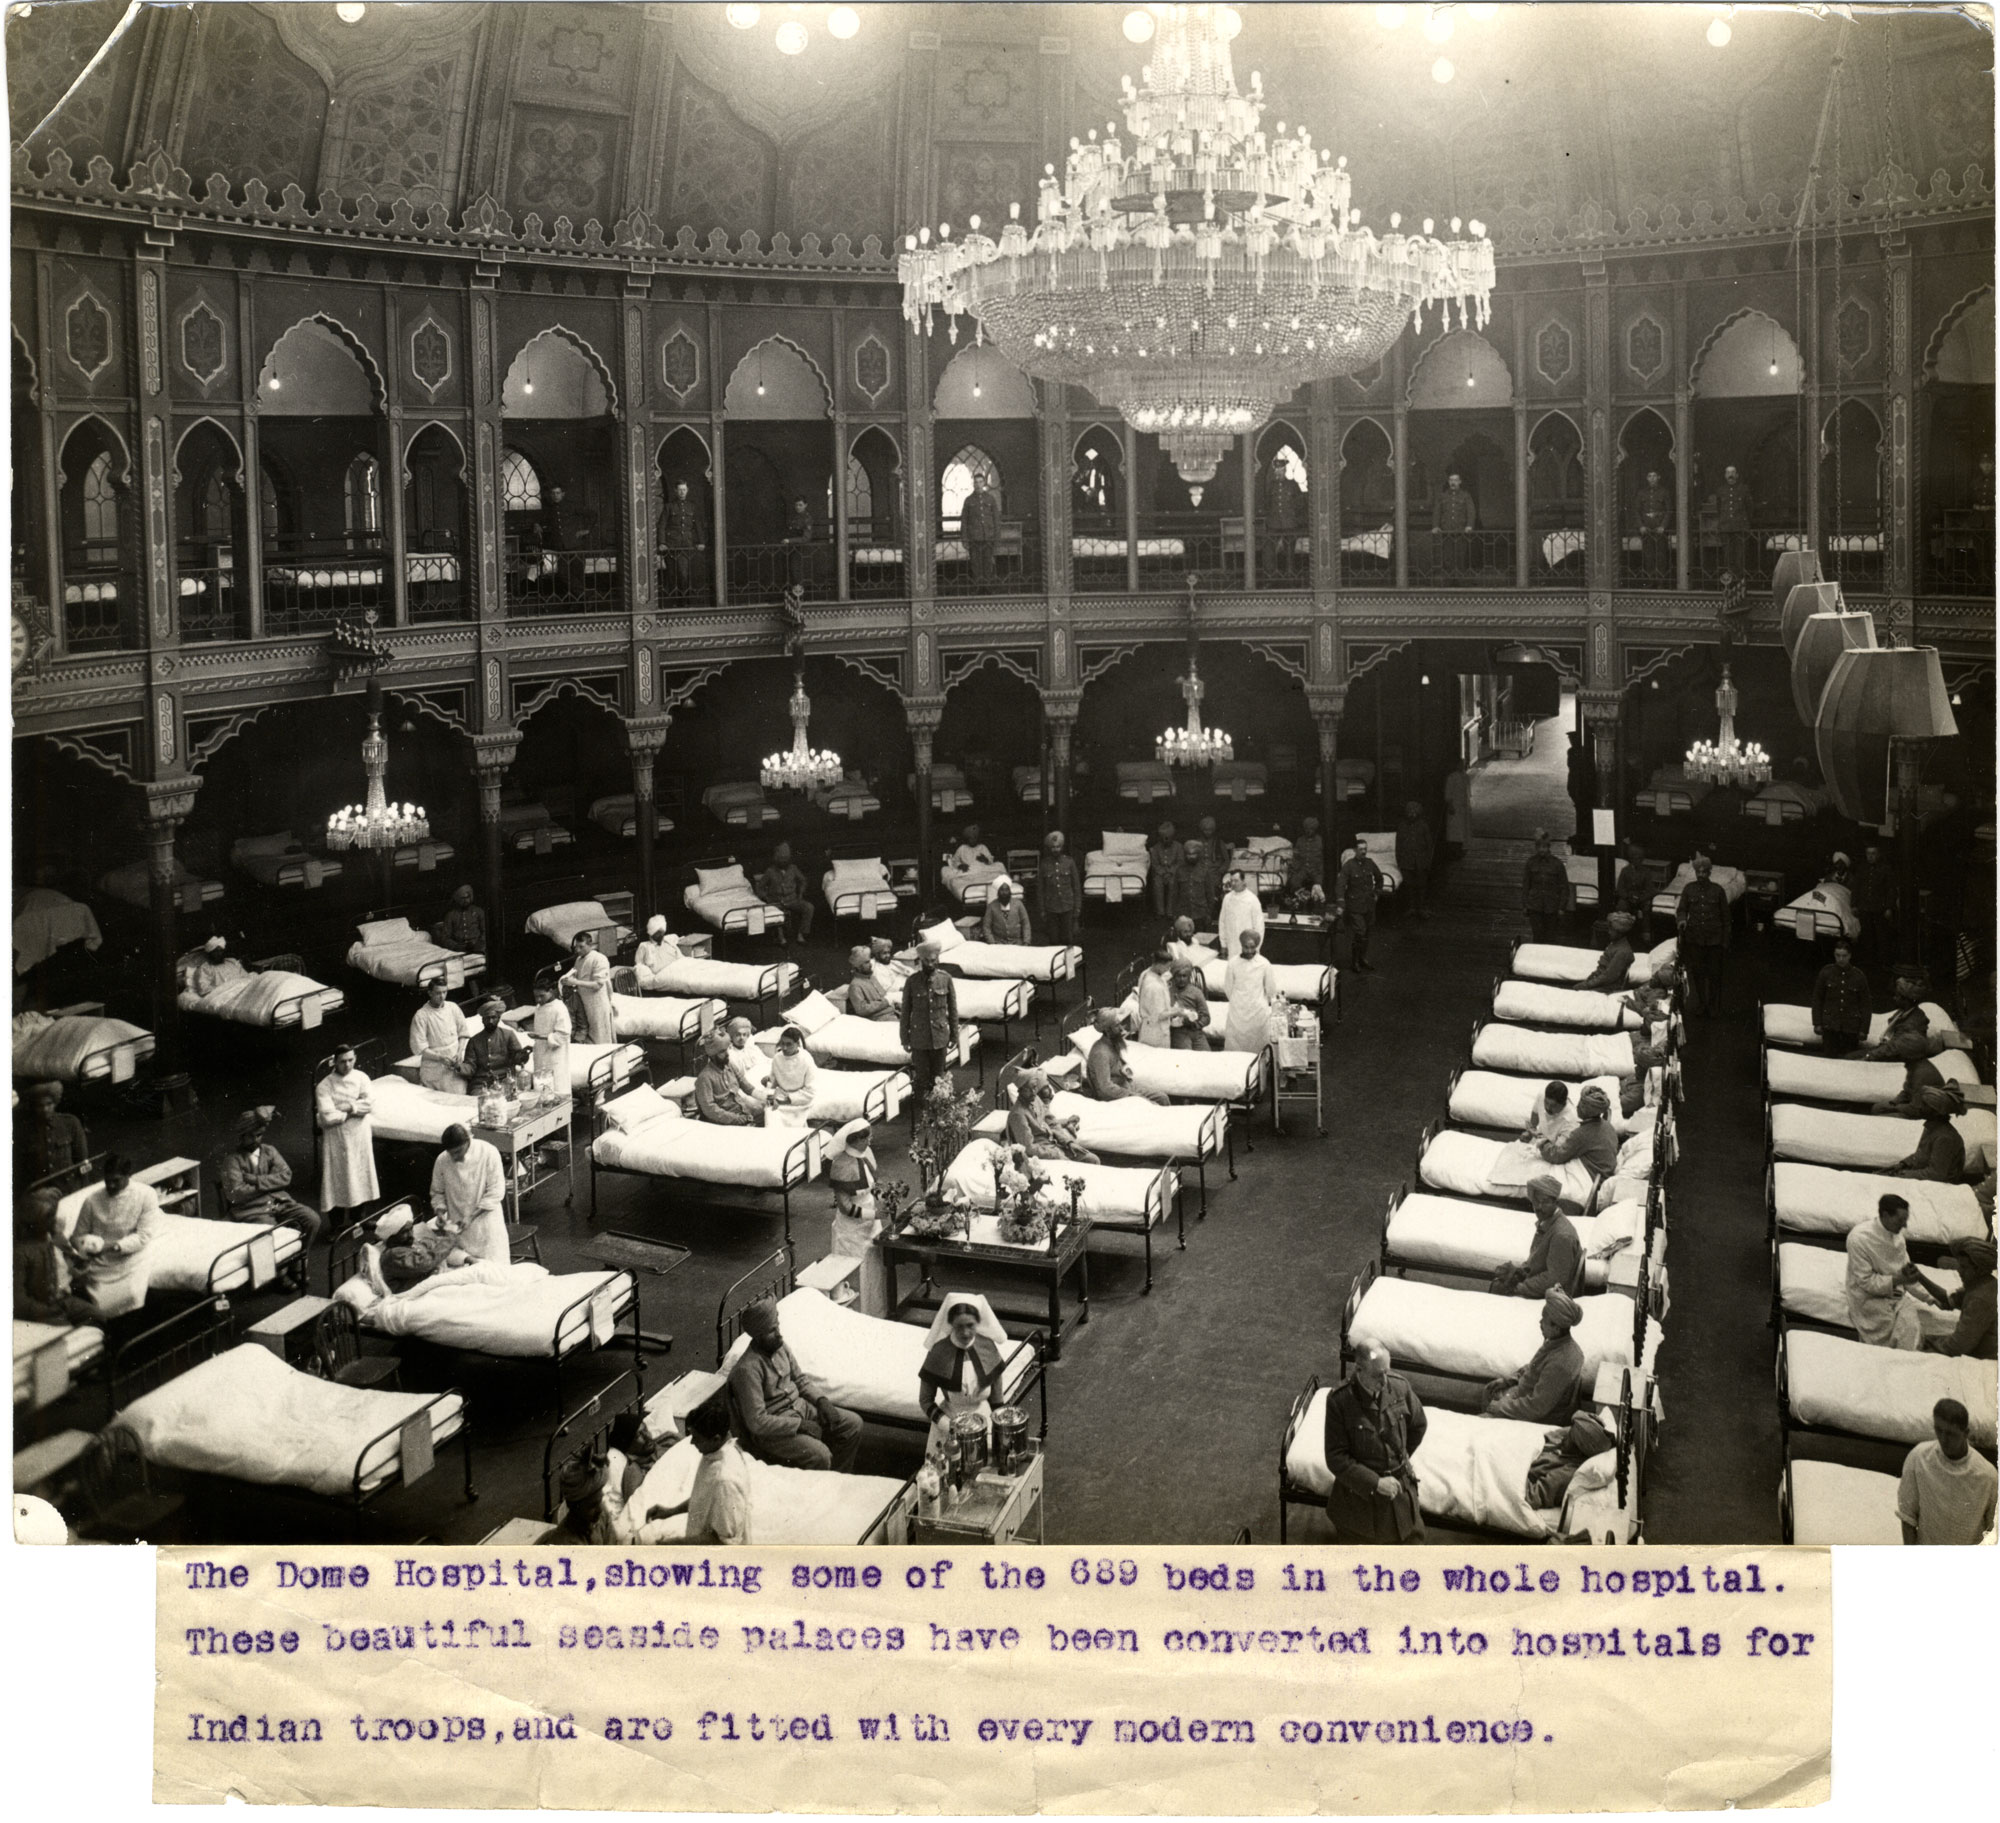 The Dome Hospital in Brighton, which had 680 beds for wounded Indian soldiers.